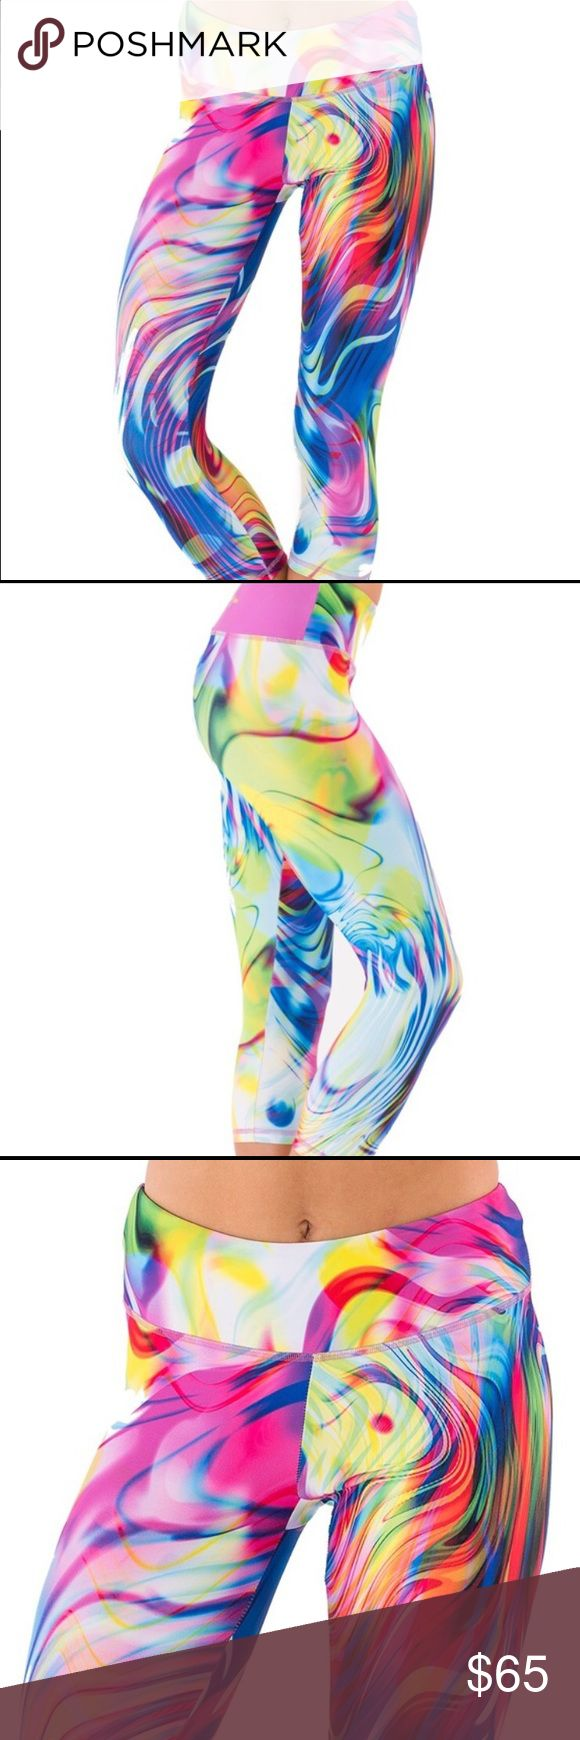 ONLY 6 LEFTelectric yoga rainbow swirl leggings WOW in these beautiful Electric Yoga unique leggings-gorgeous bright colors❥looks great with your fave sports bra❥BEST SELLER-limited stock❥NWT❥compare to Lululemon❥82% polyester/18% spandex❥band is blue (not pink as shown)❥MSRP: $119                                  ••••••••••••••••••••••••••••••••••••••••••••••••••••••••••• tags: exercise, workout, yoga, pilates, barre, rainbow, rave, festival, leggings, capri pants, fun, colorful, woman…